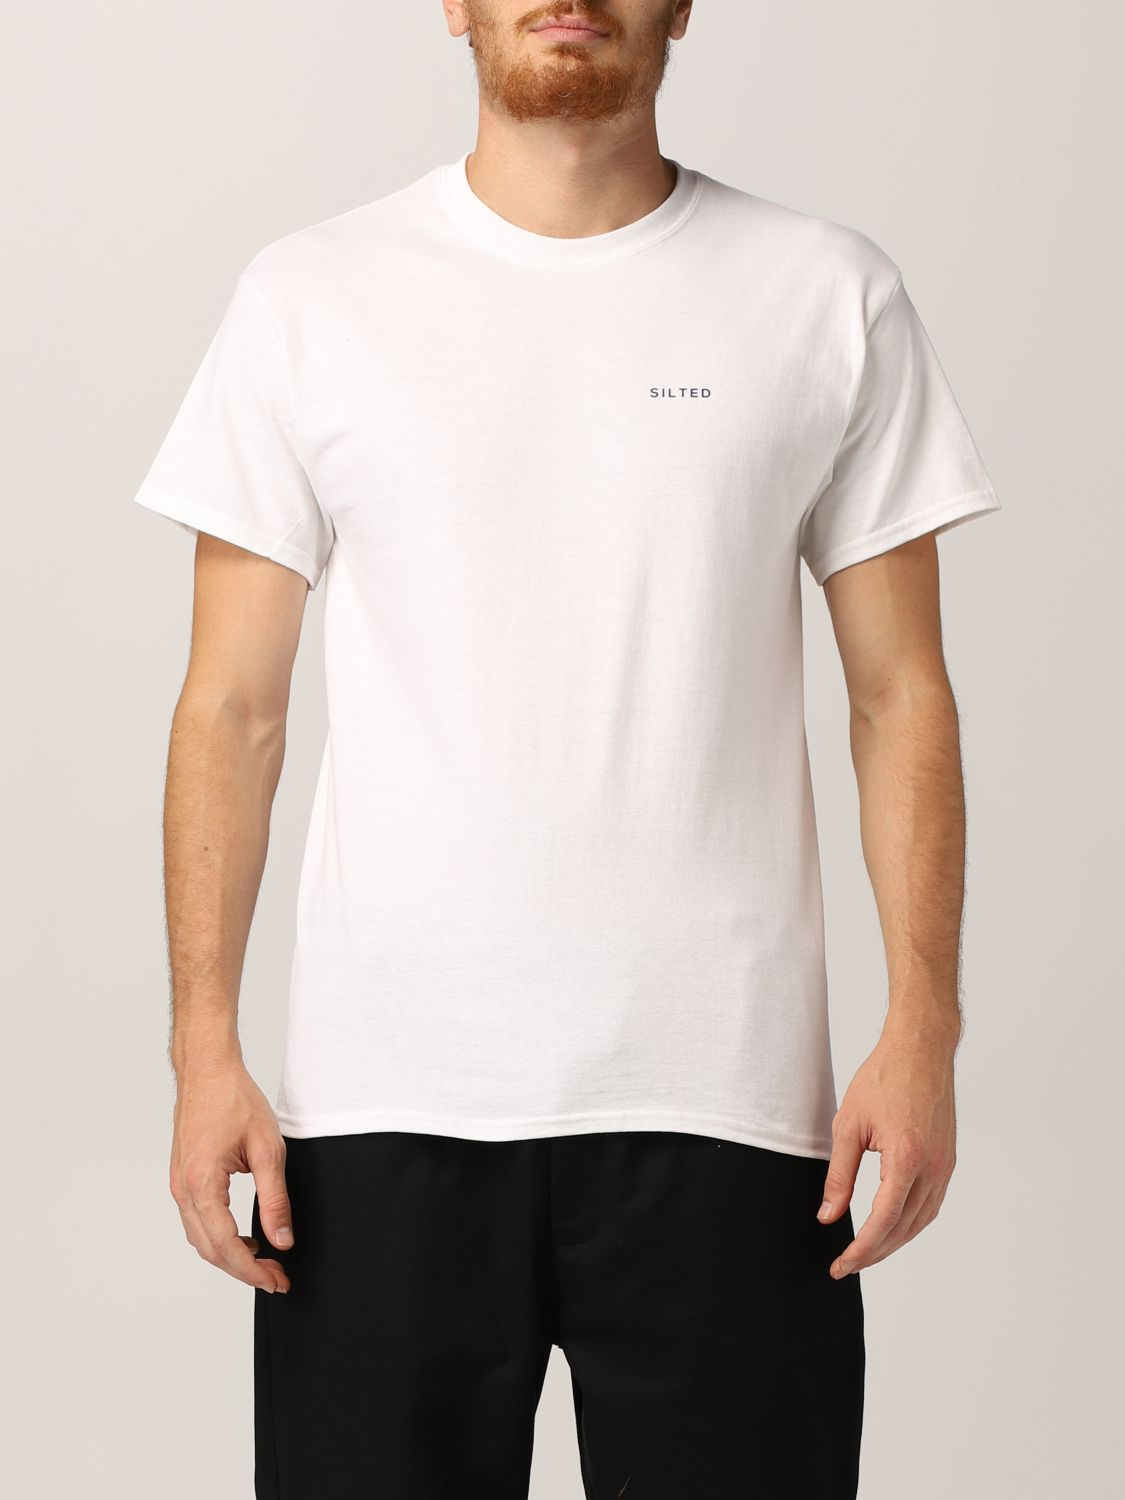 Camiseta Silted: Camiseta hombre Silted blanco 1